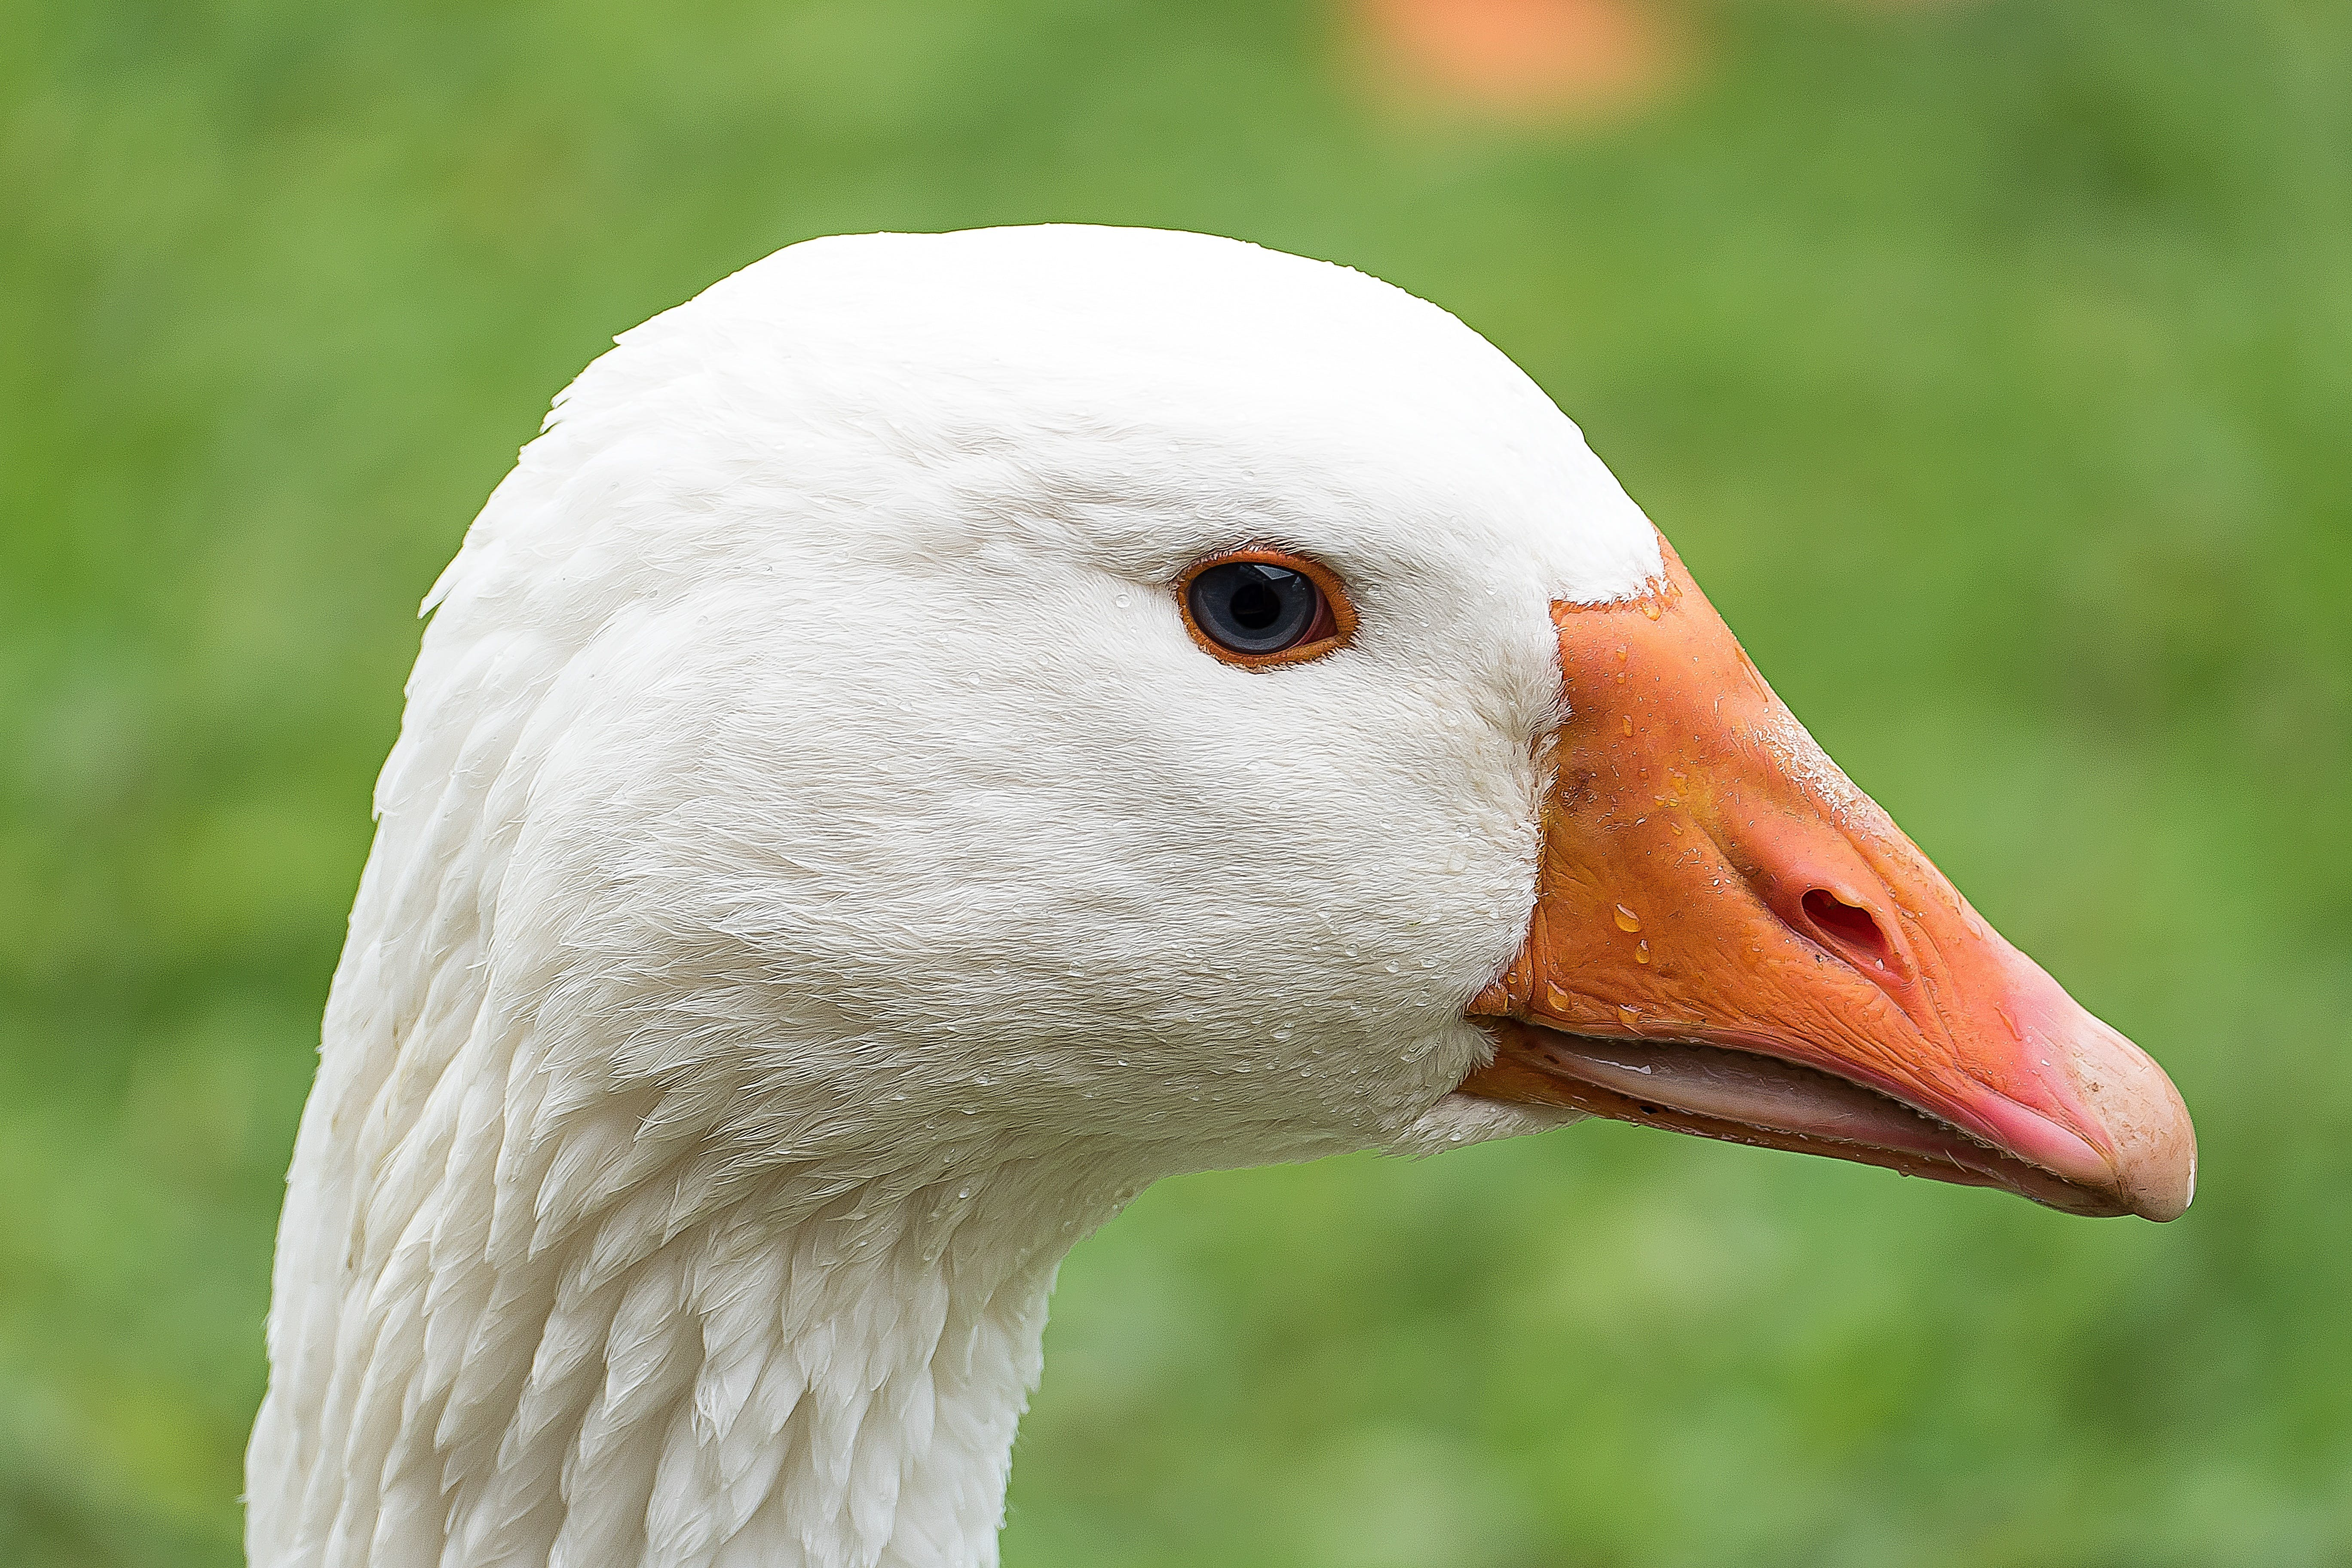 White Fur and Orange Beak Animal